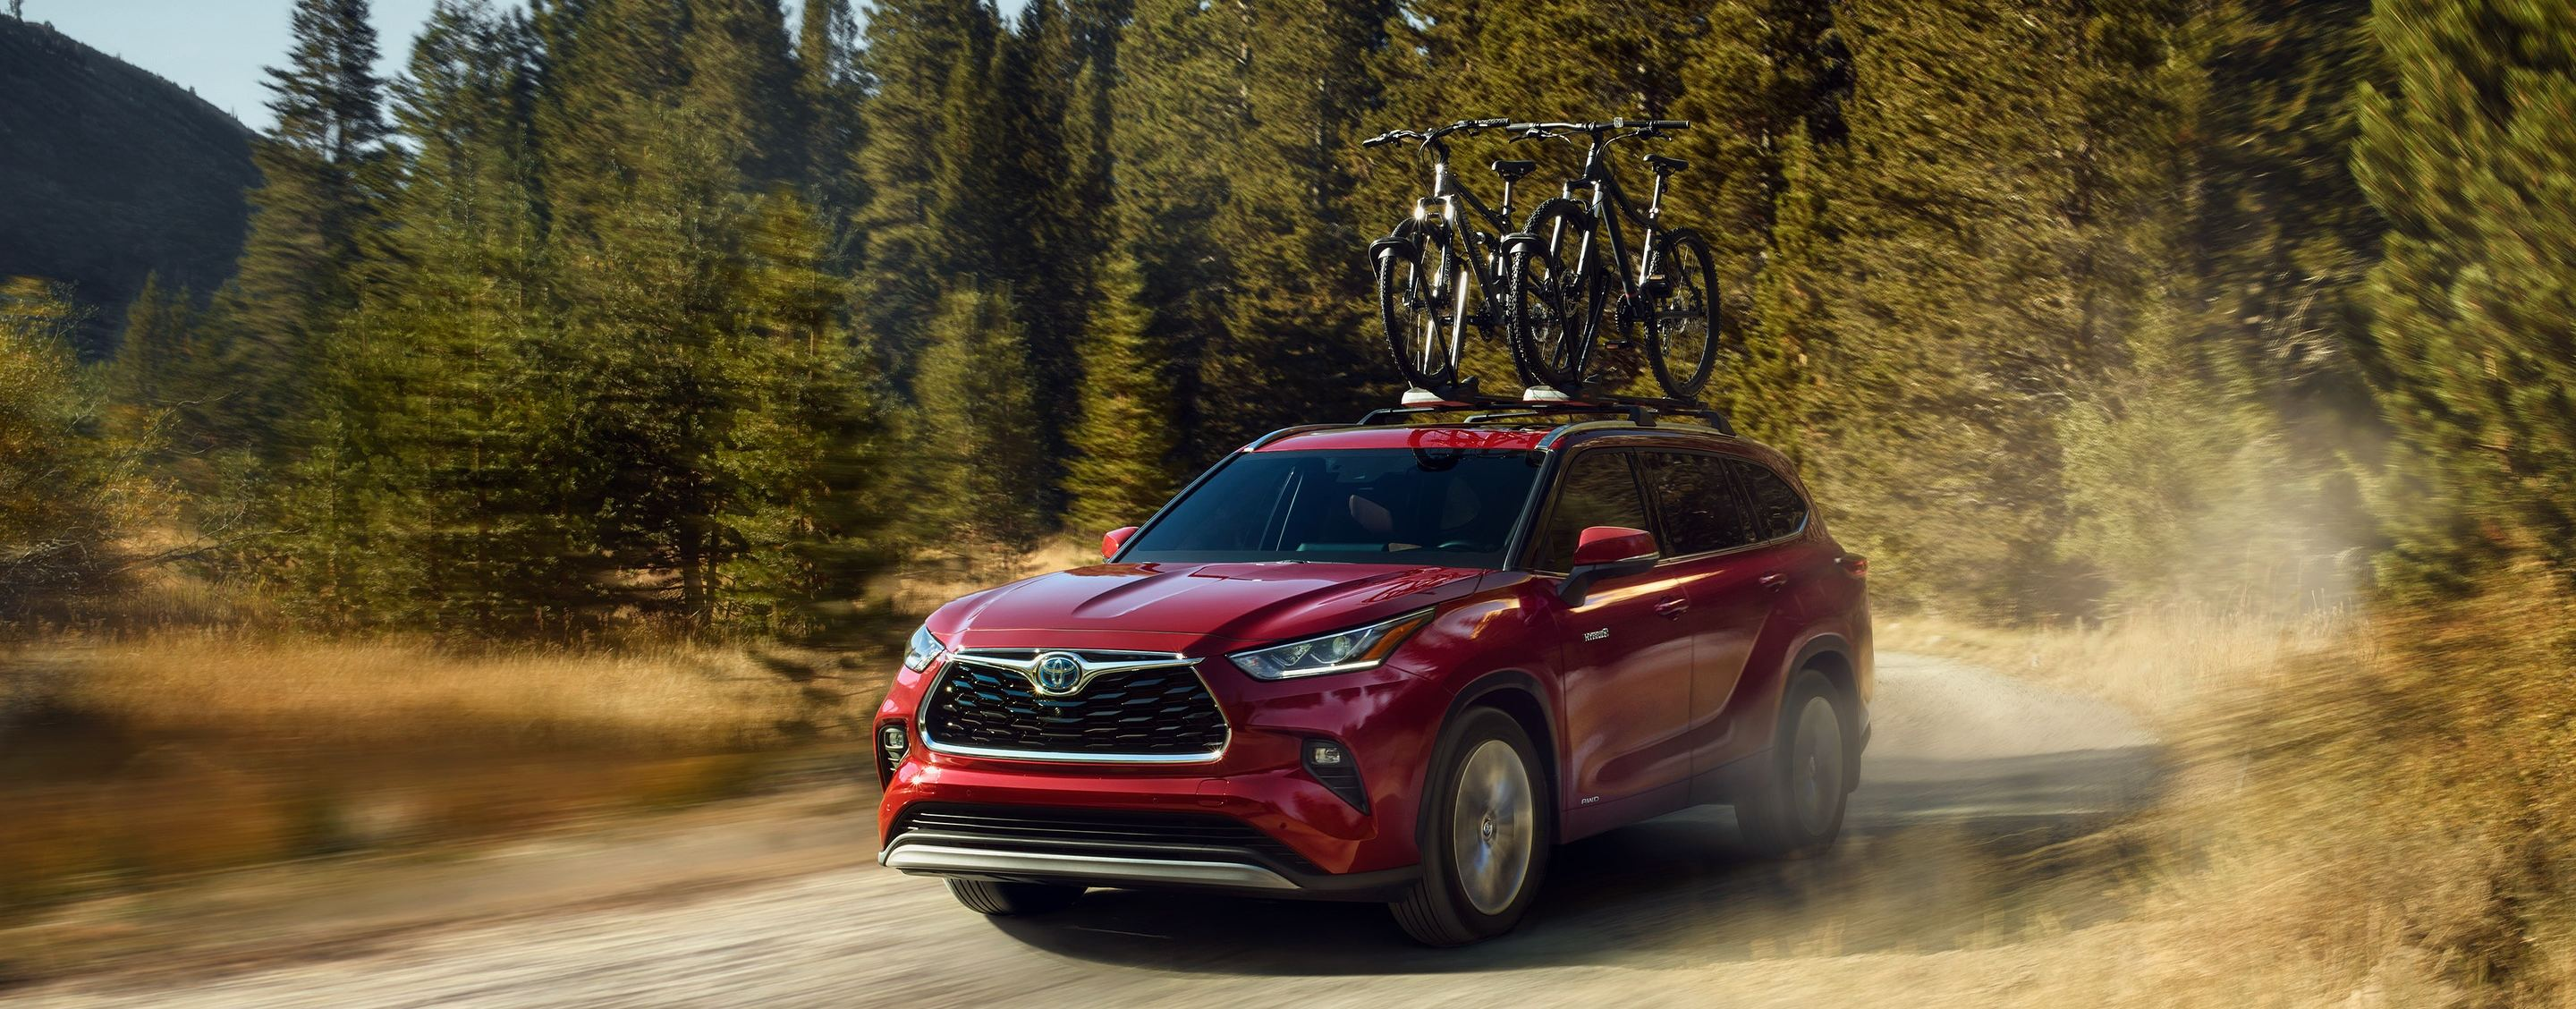 2020 Toyota Highlander for Sale near Brookings, SD